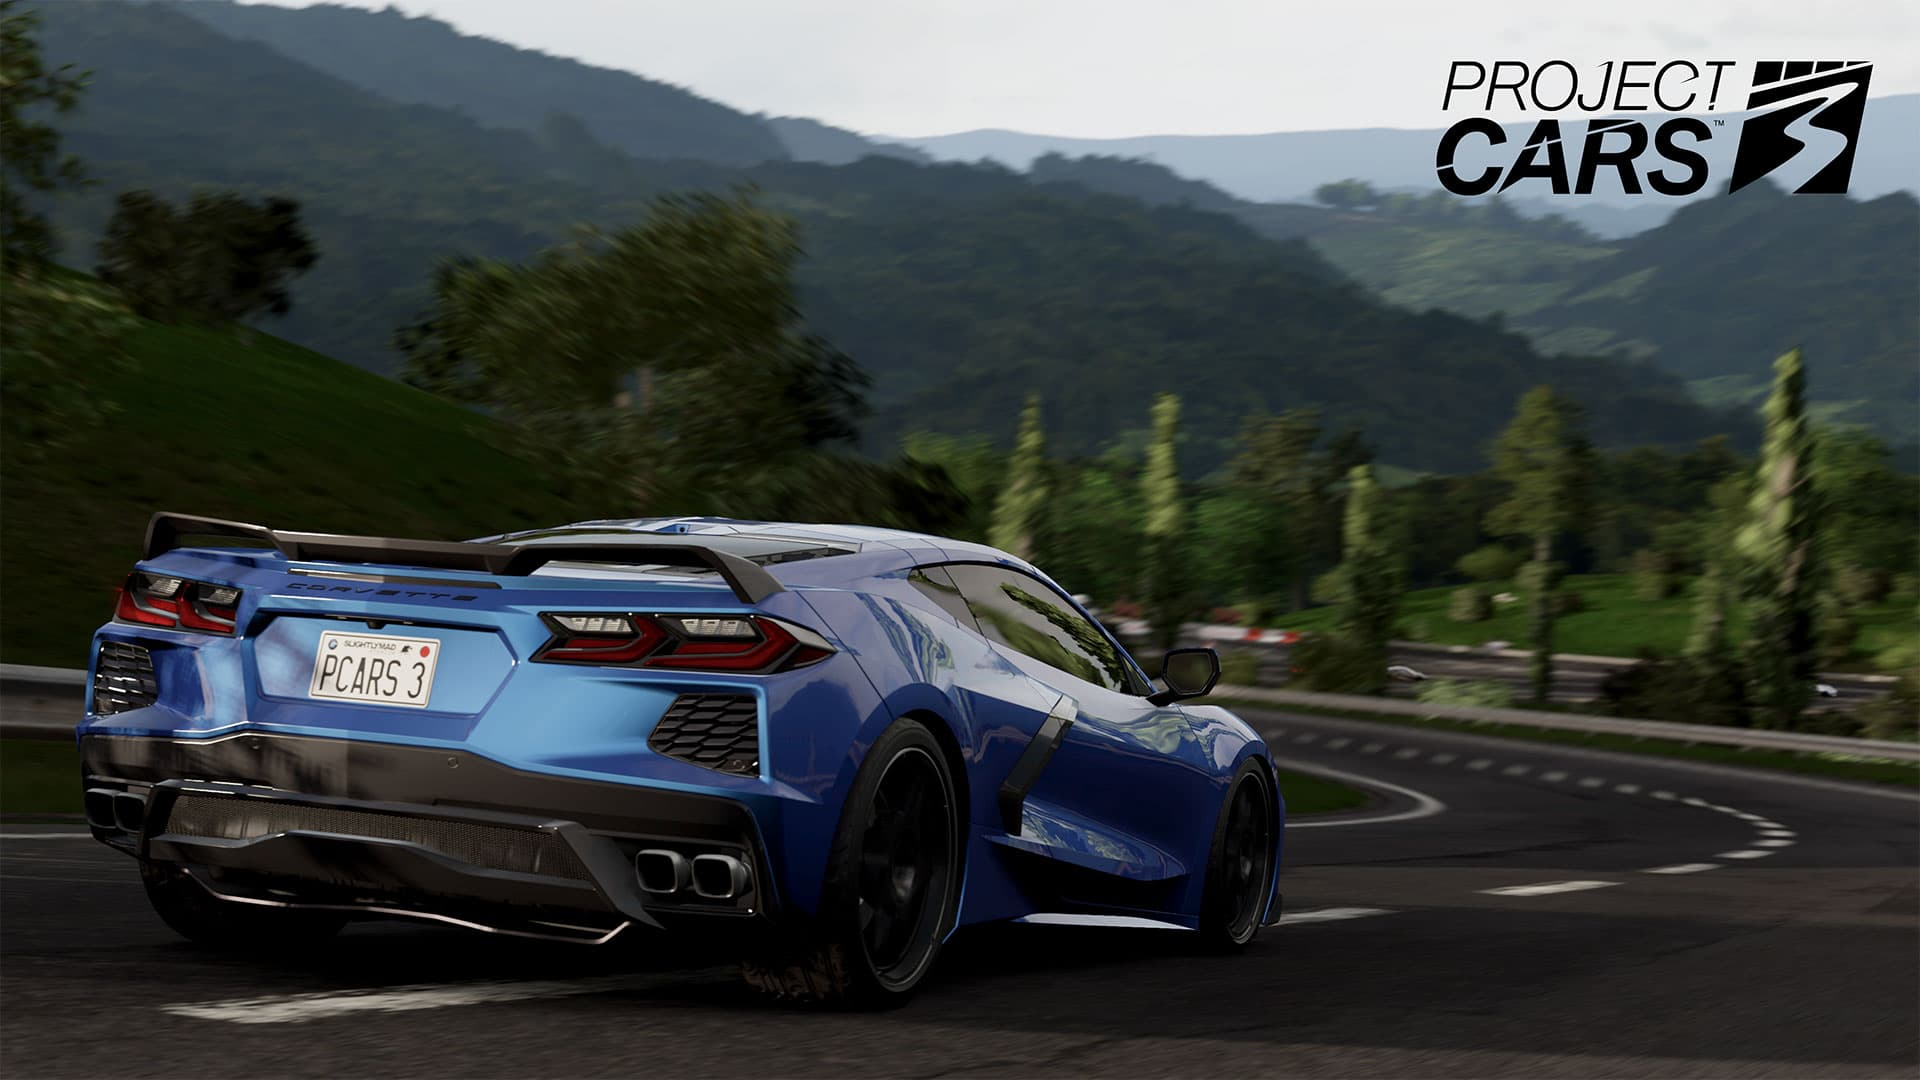 Les Alpinistes Project Cars 3 Corvette Honda 3 | Project Cars 3: Alpine A110S et GT4 au programme